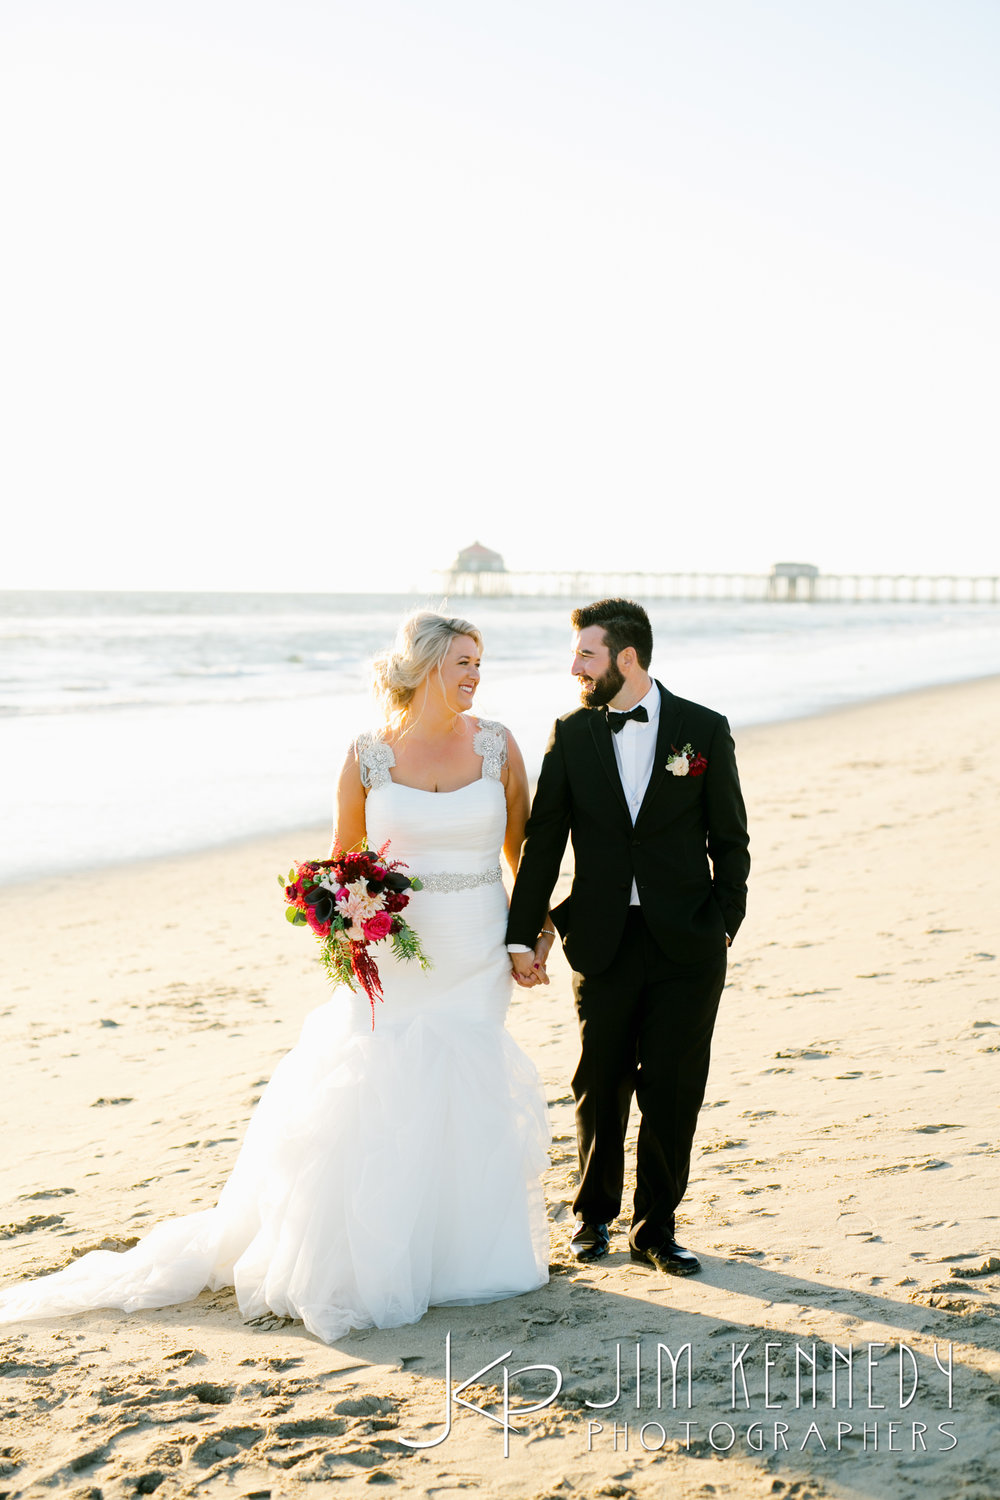 waterfront-beach-resort-wedding-164.JPG